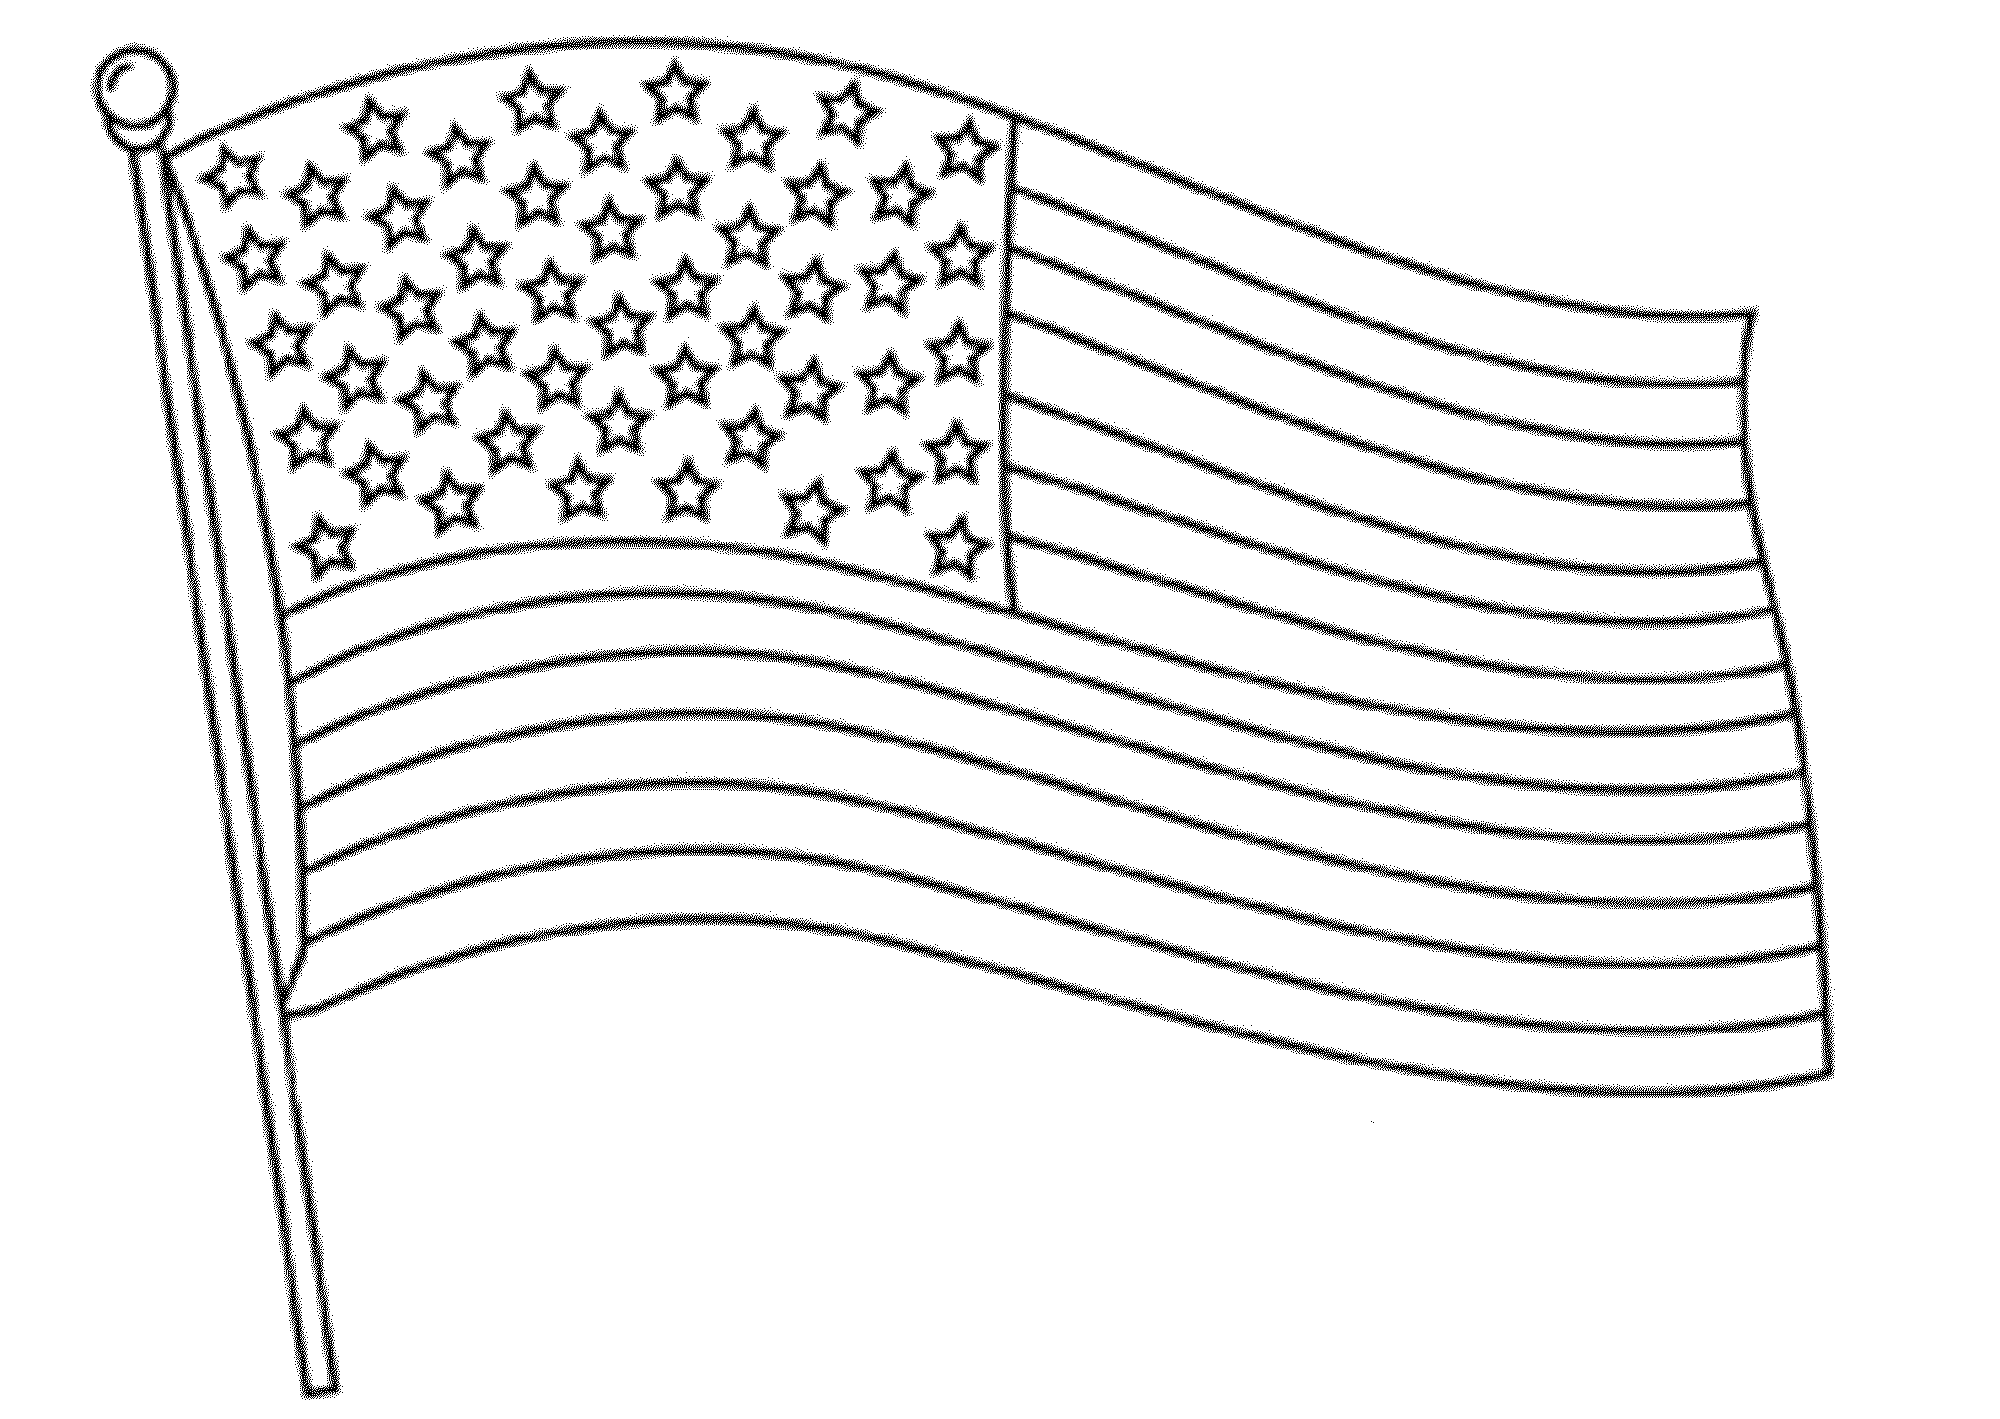 Usa flag star black and white clipart clip freeuse stock American Flag Coloring Page for the Love of the Country clip freeuse stock